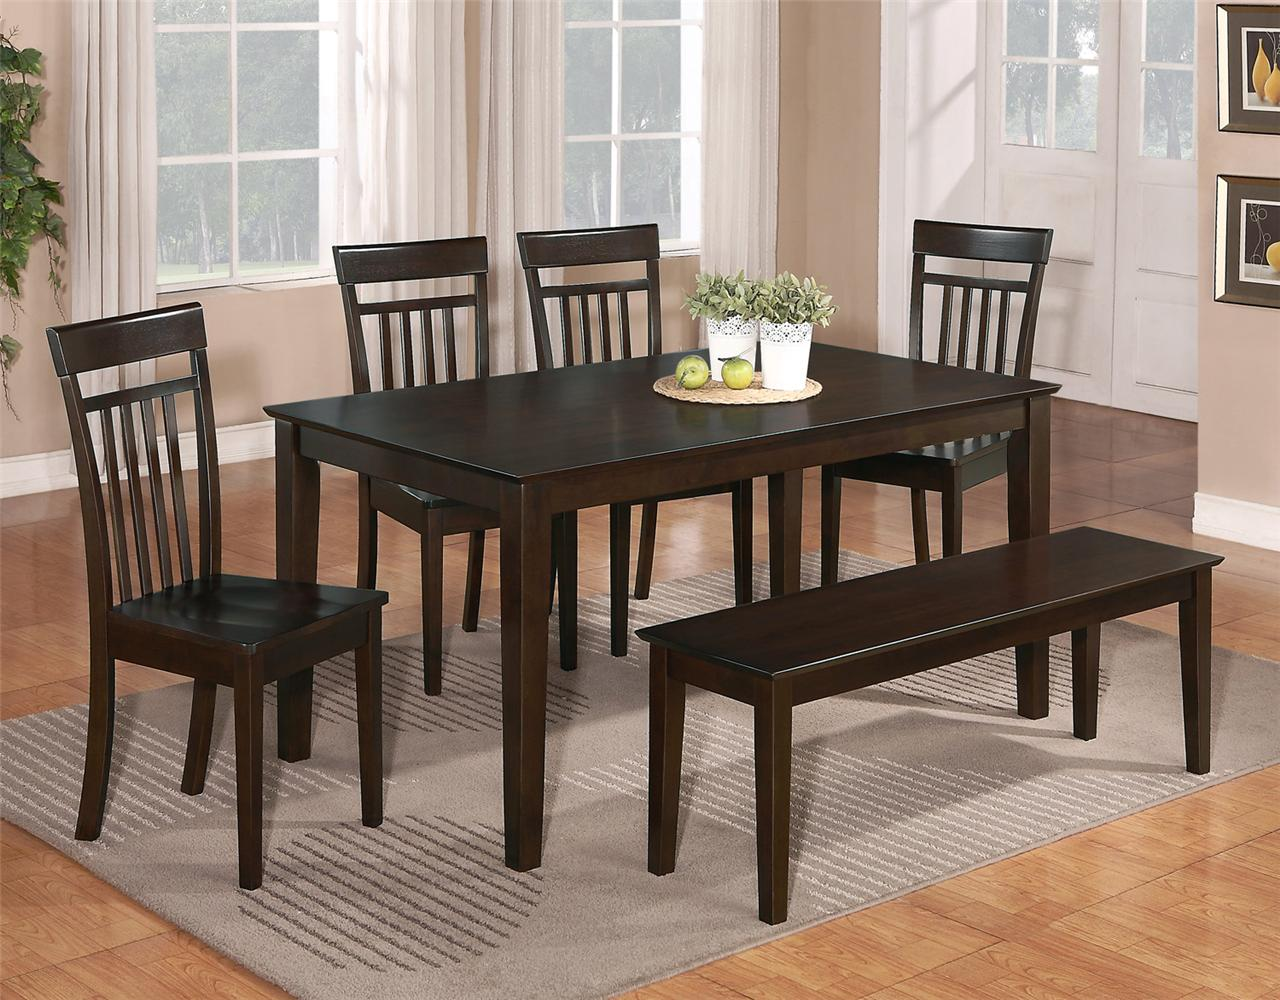 6 pc dinette kitchen dining room set table w 4 wood chair for Dining room table and chair sets